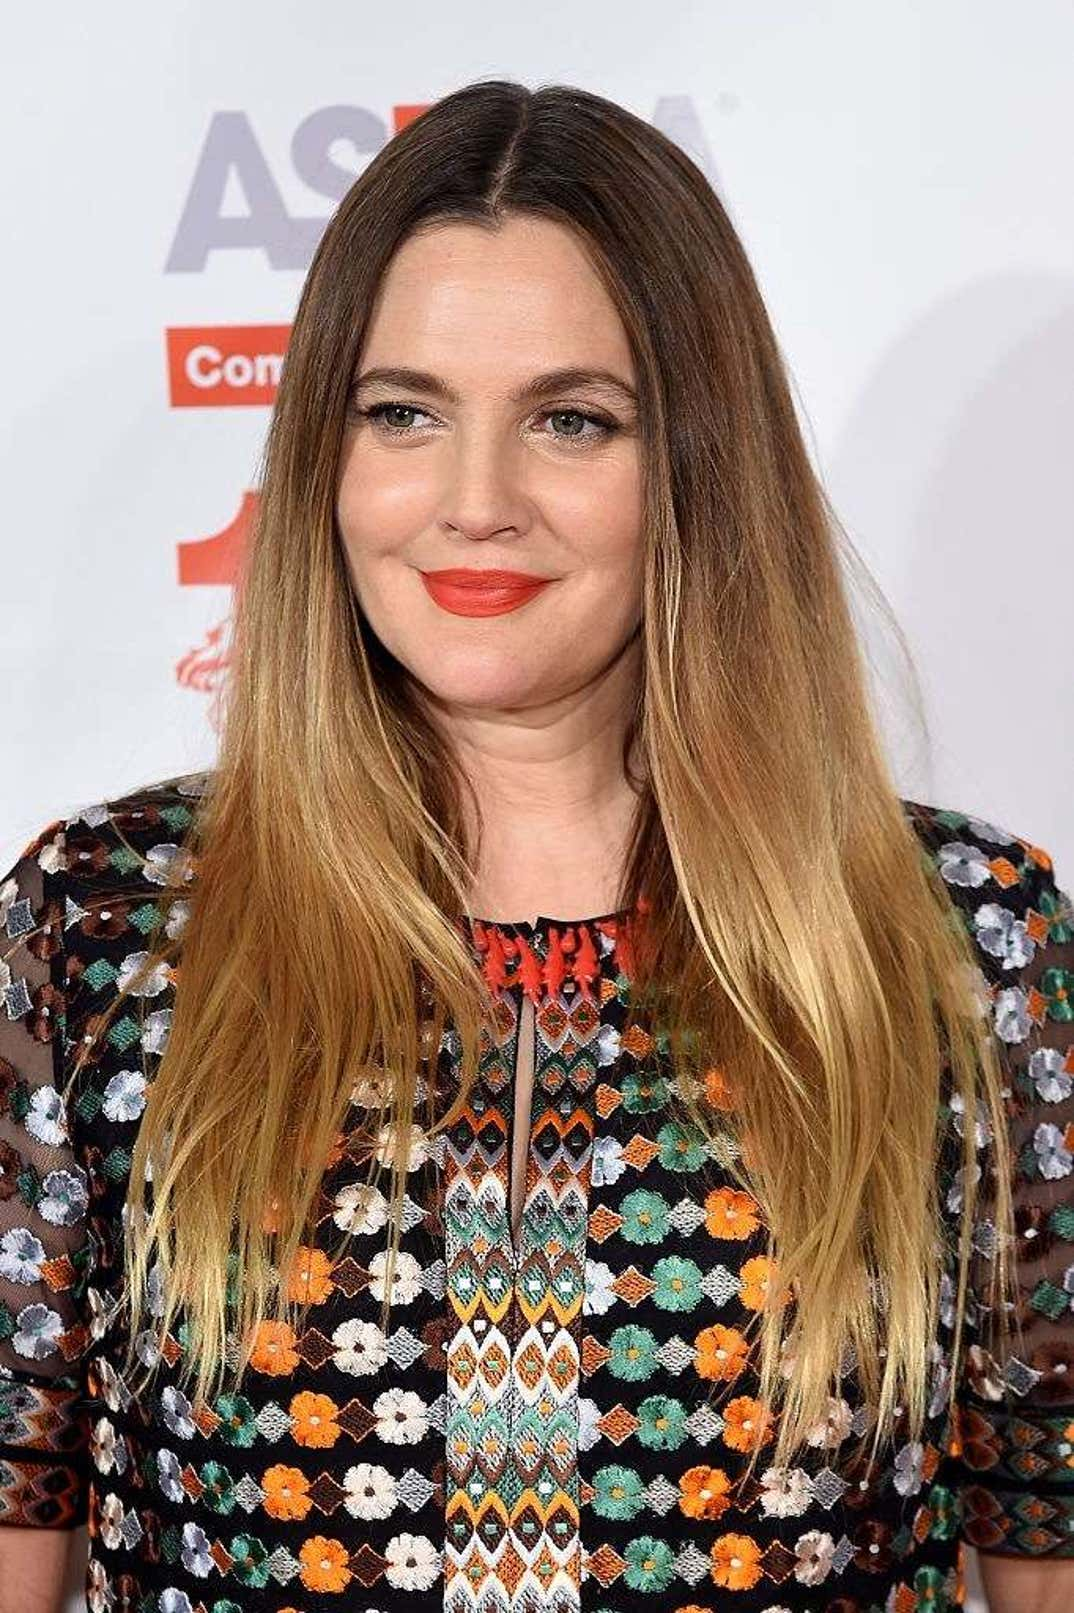 Drew Barrymore ... now 44 years old